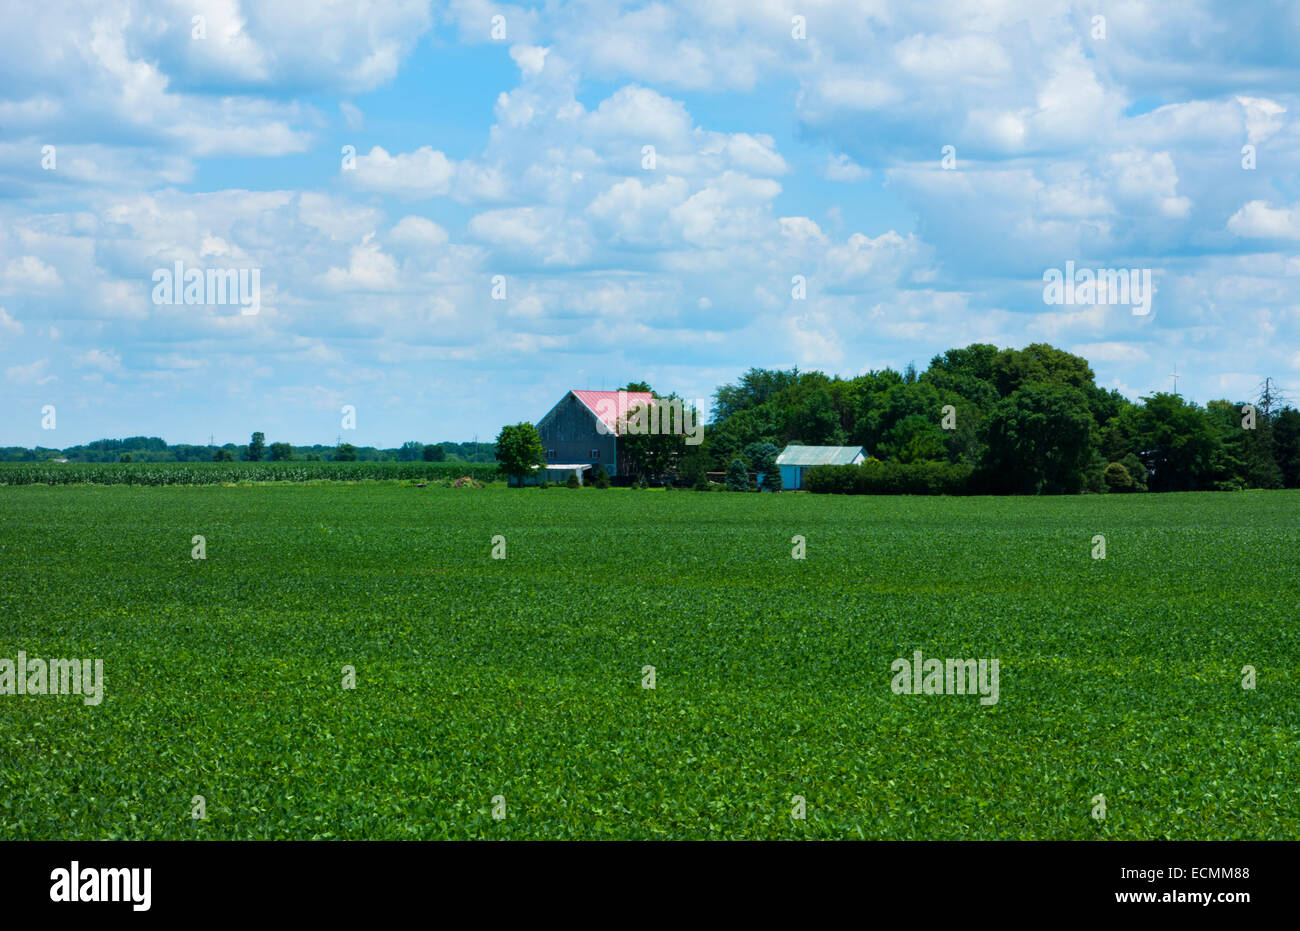 Kankakee Illinois farming in Midwest on sunny day with clouds - Stock Image